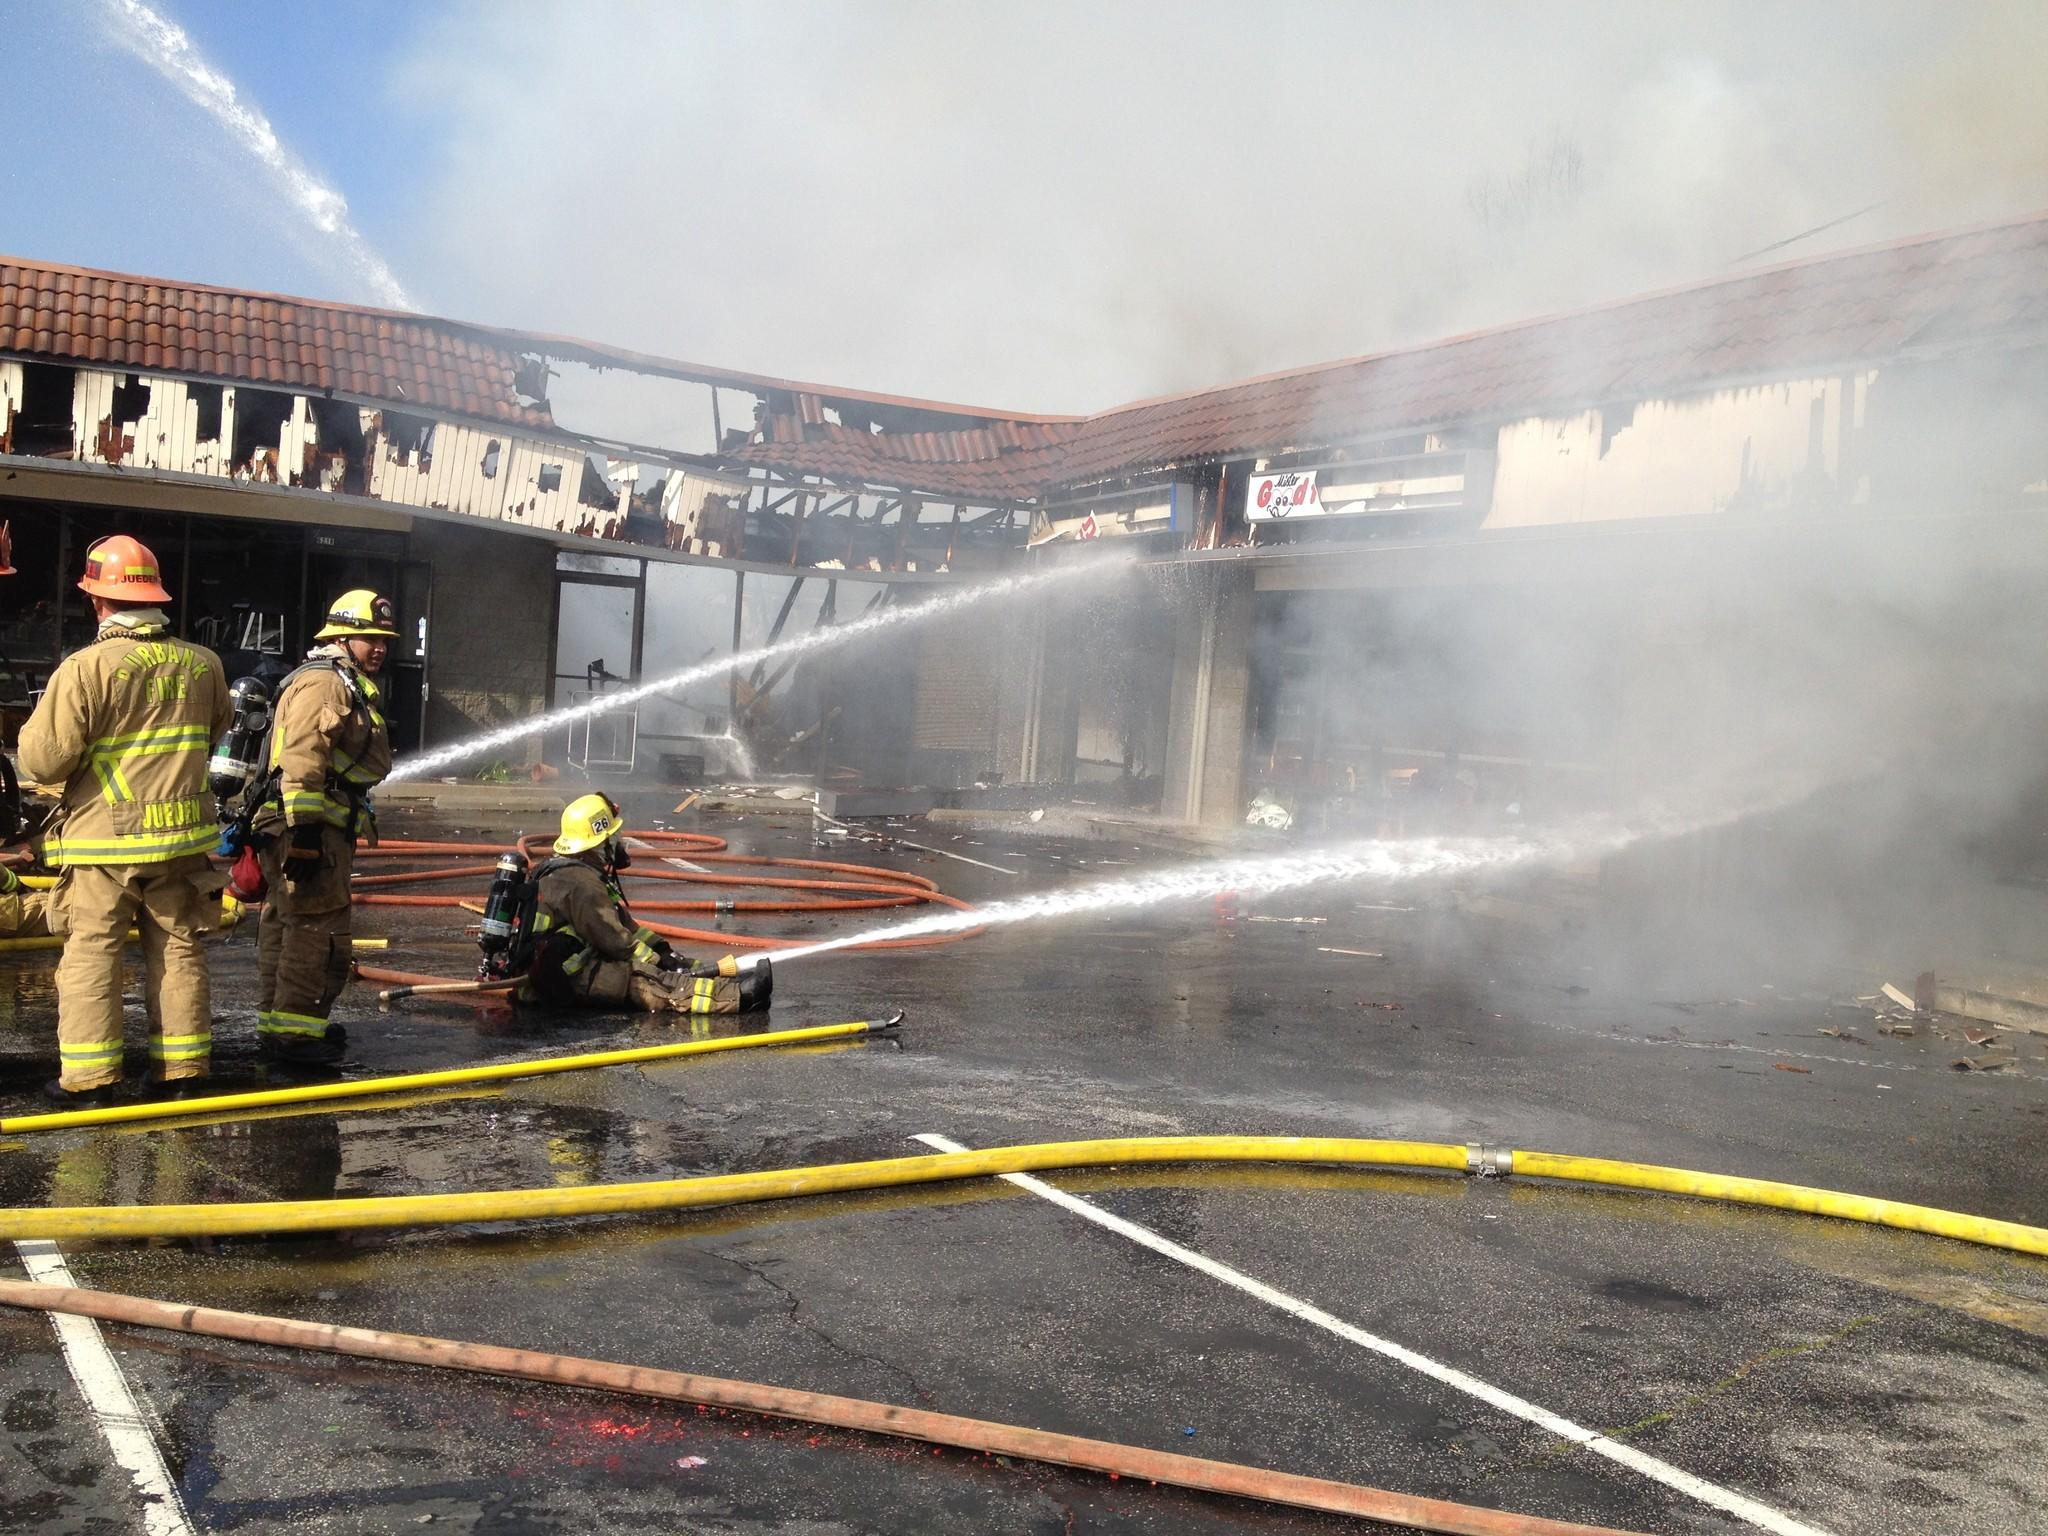 Firefighters hose down a blaze that broke out in a strip mall on Glenoaks Boulevard Monday, Feb. 10, 2014.